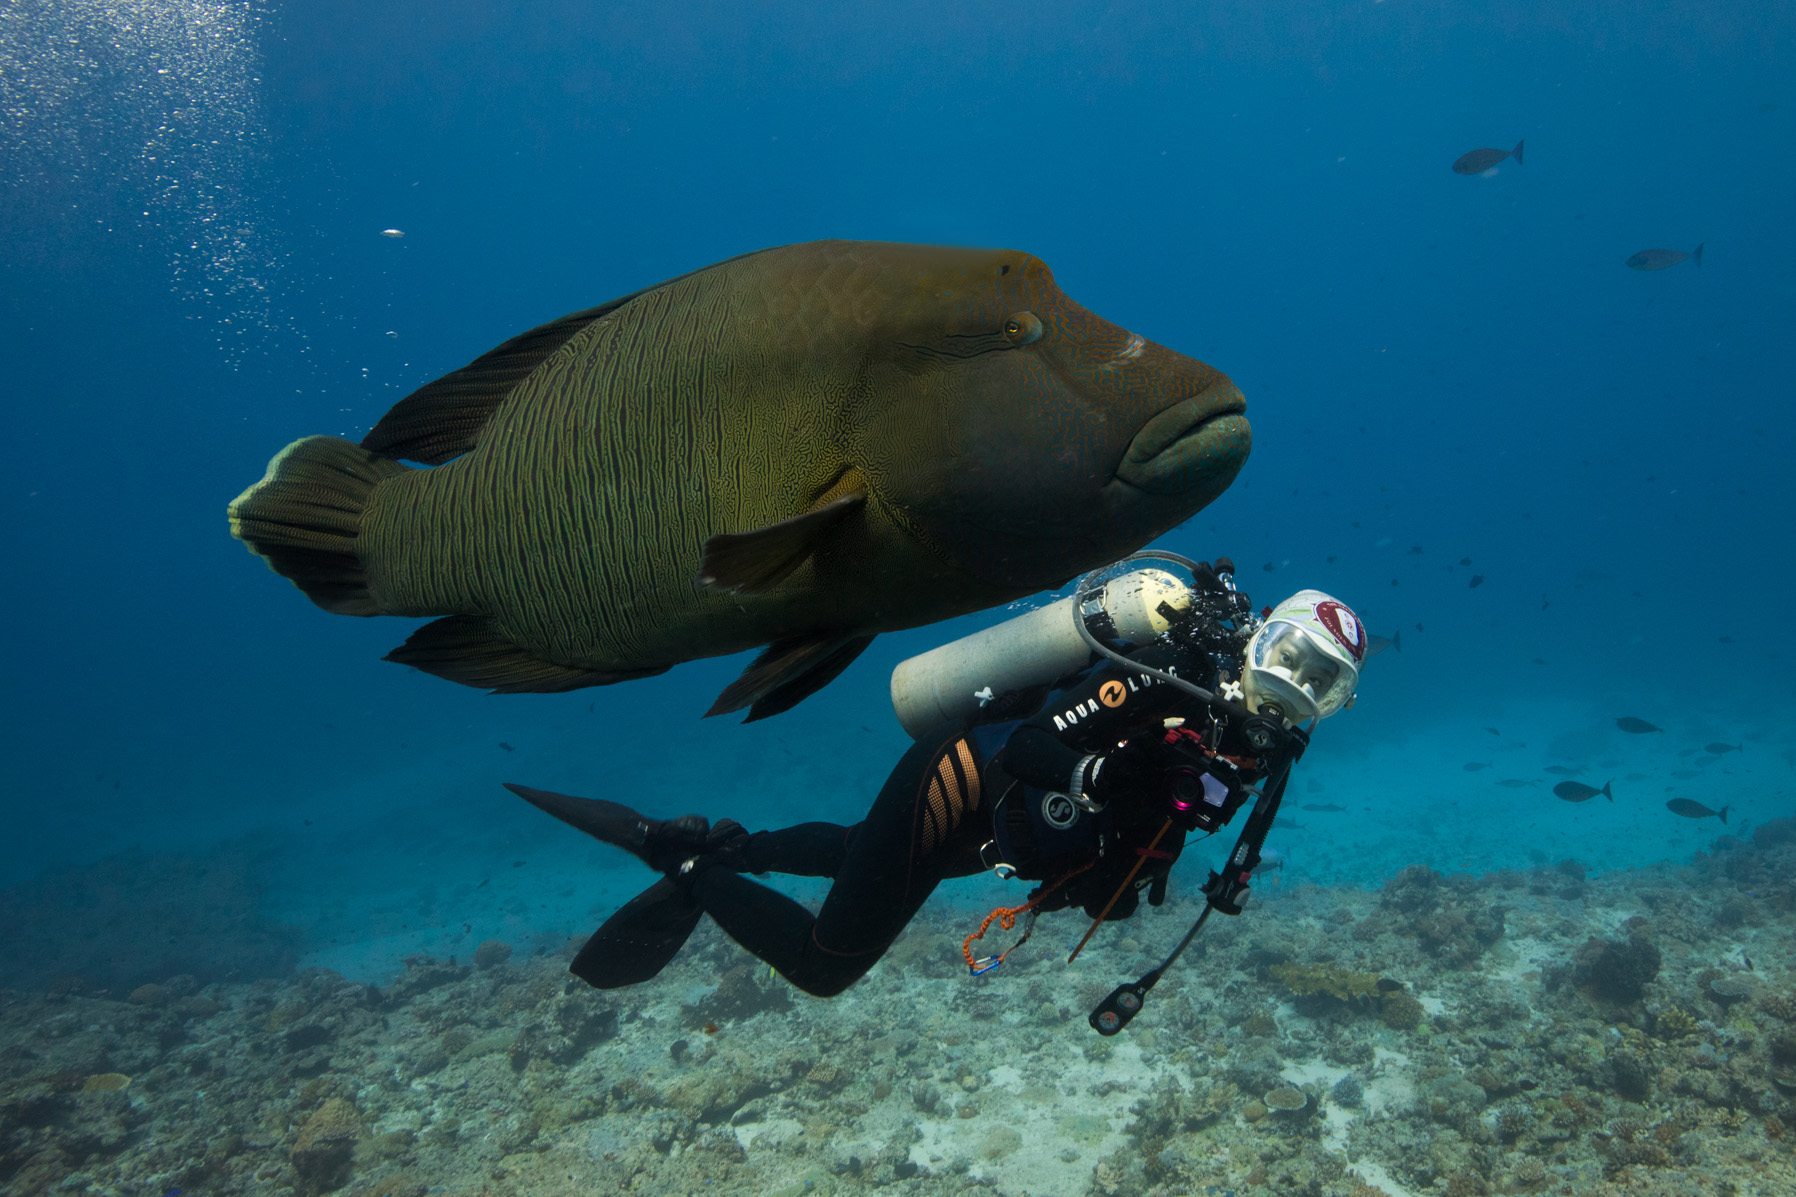 While in Palau, we took this photograph for wildlife campaigner Sharon Kwok, who is leading a campaign to save the hump-head wrasse in Hong Kong.